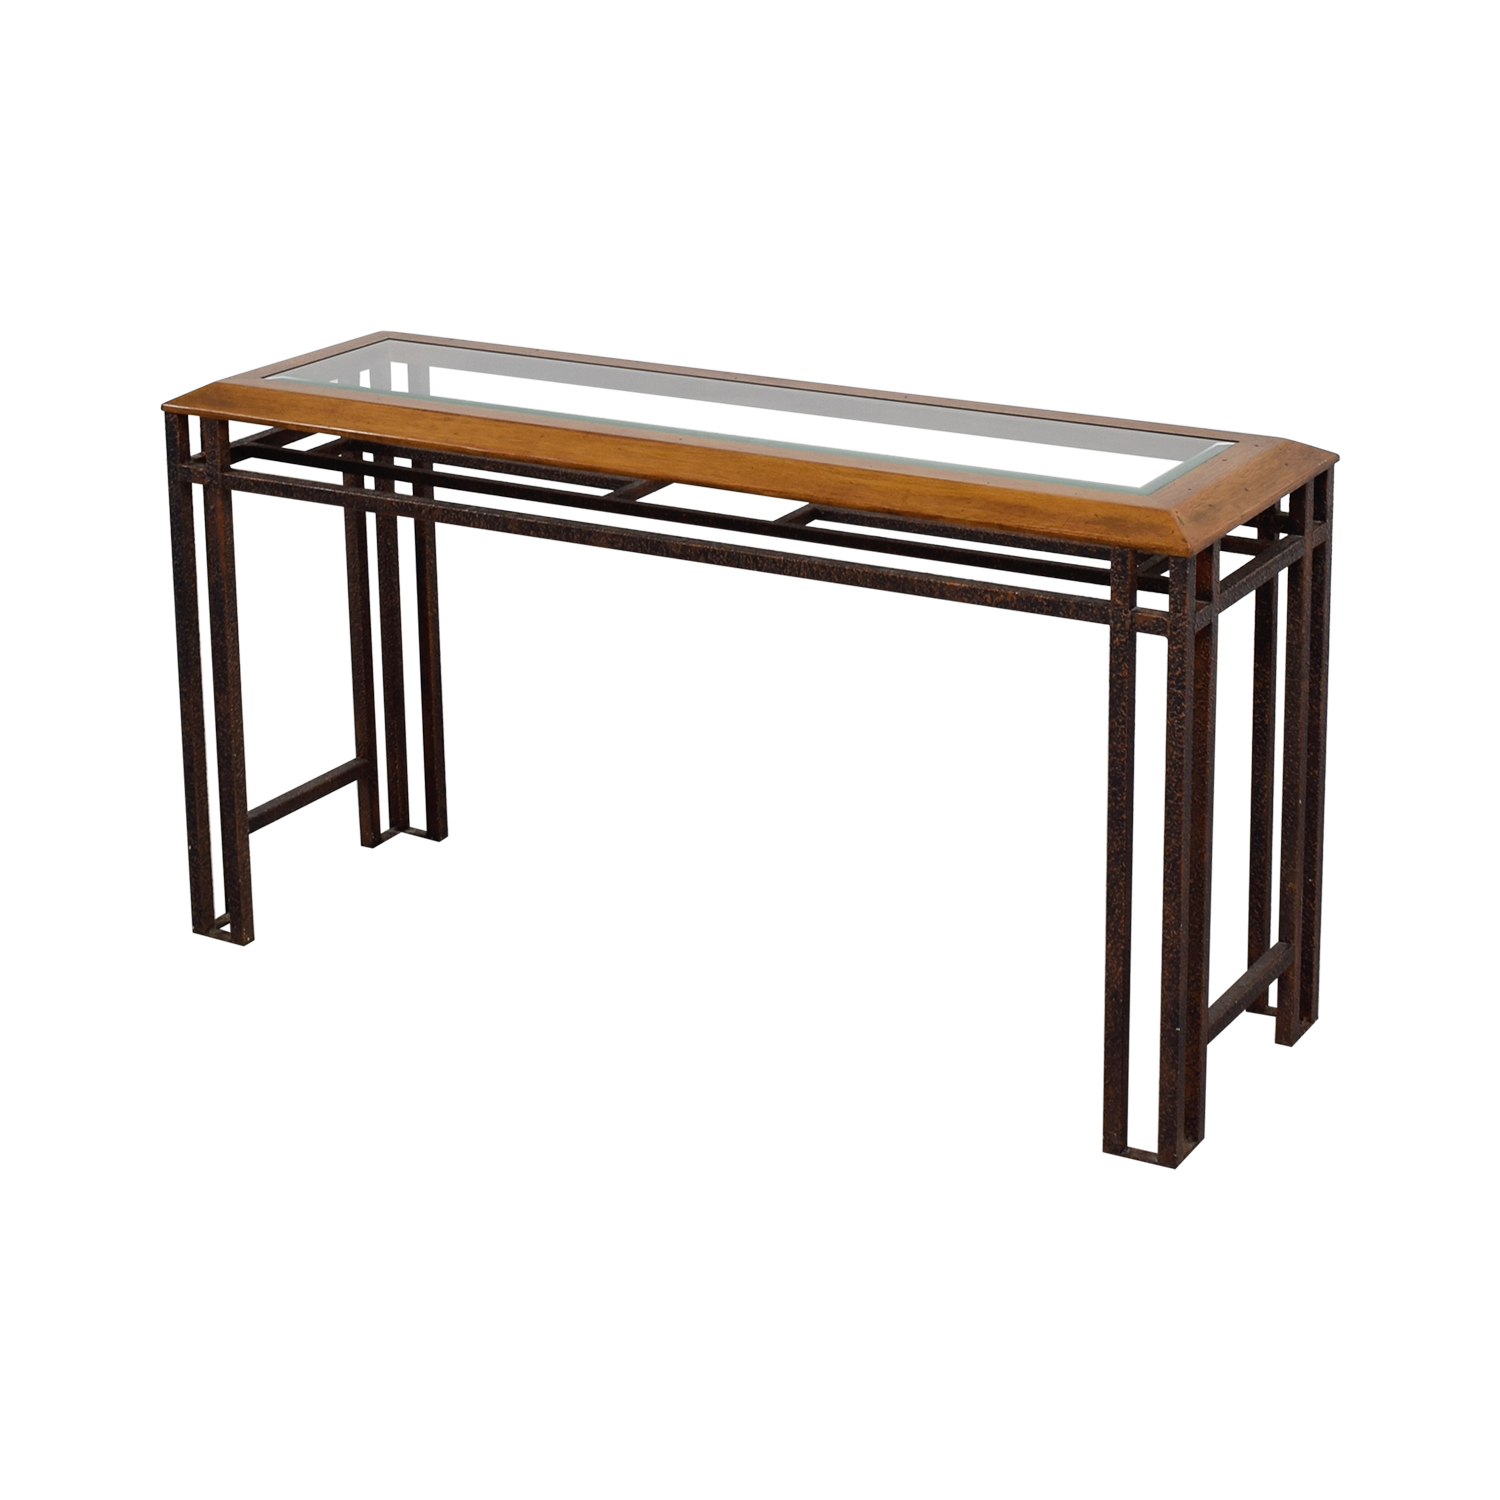 Rustic Wood And Glass Coffee Table 90 Off Rustic Brass Wood And Glass Console Table Tables